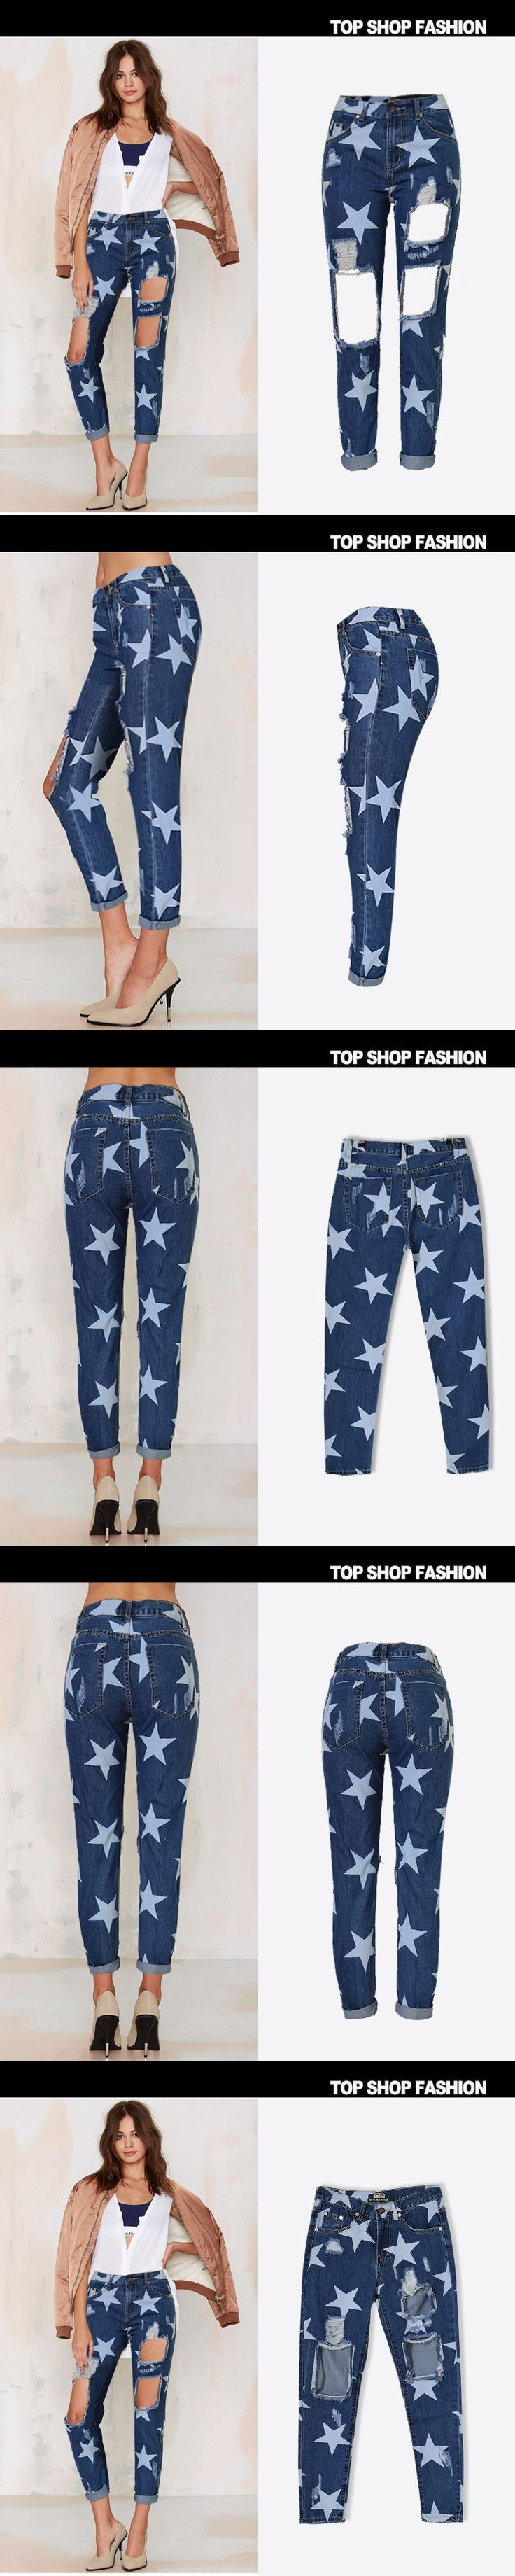 new wild beggar BF ankle-length jeans European and American women high waist hole jeans loose straight jeans star print pants